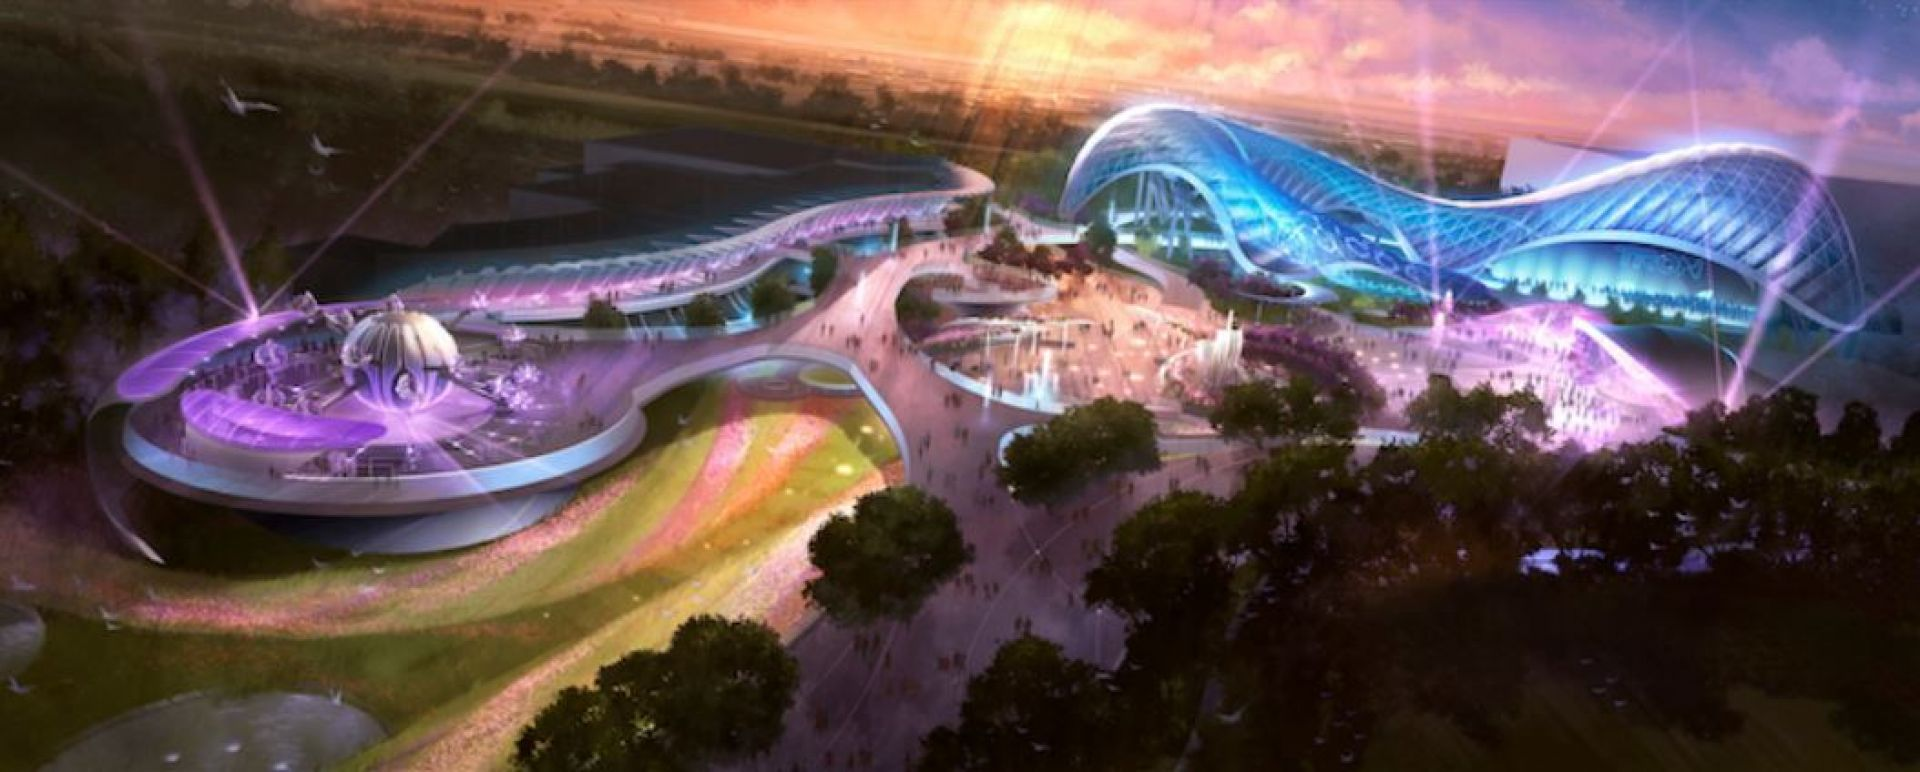 Tomorrowland, one of the six themed lands to open in Shanghai Theme Park in 2016. Photo: Disney Parks Blog